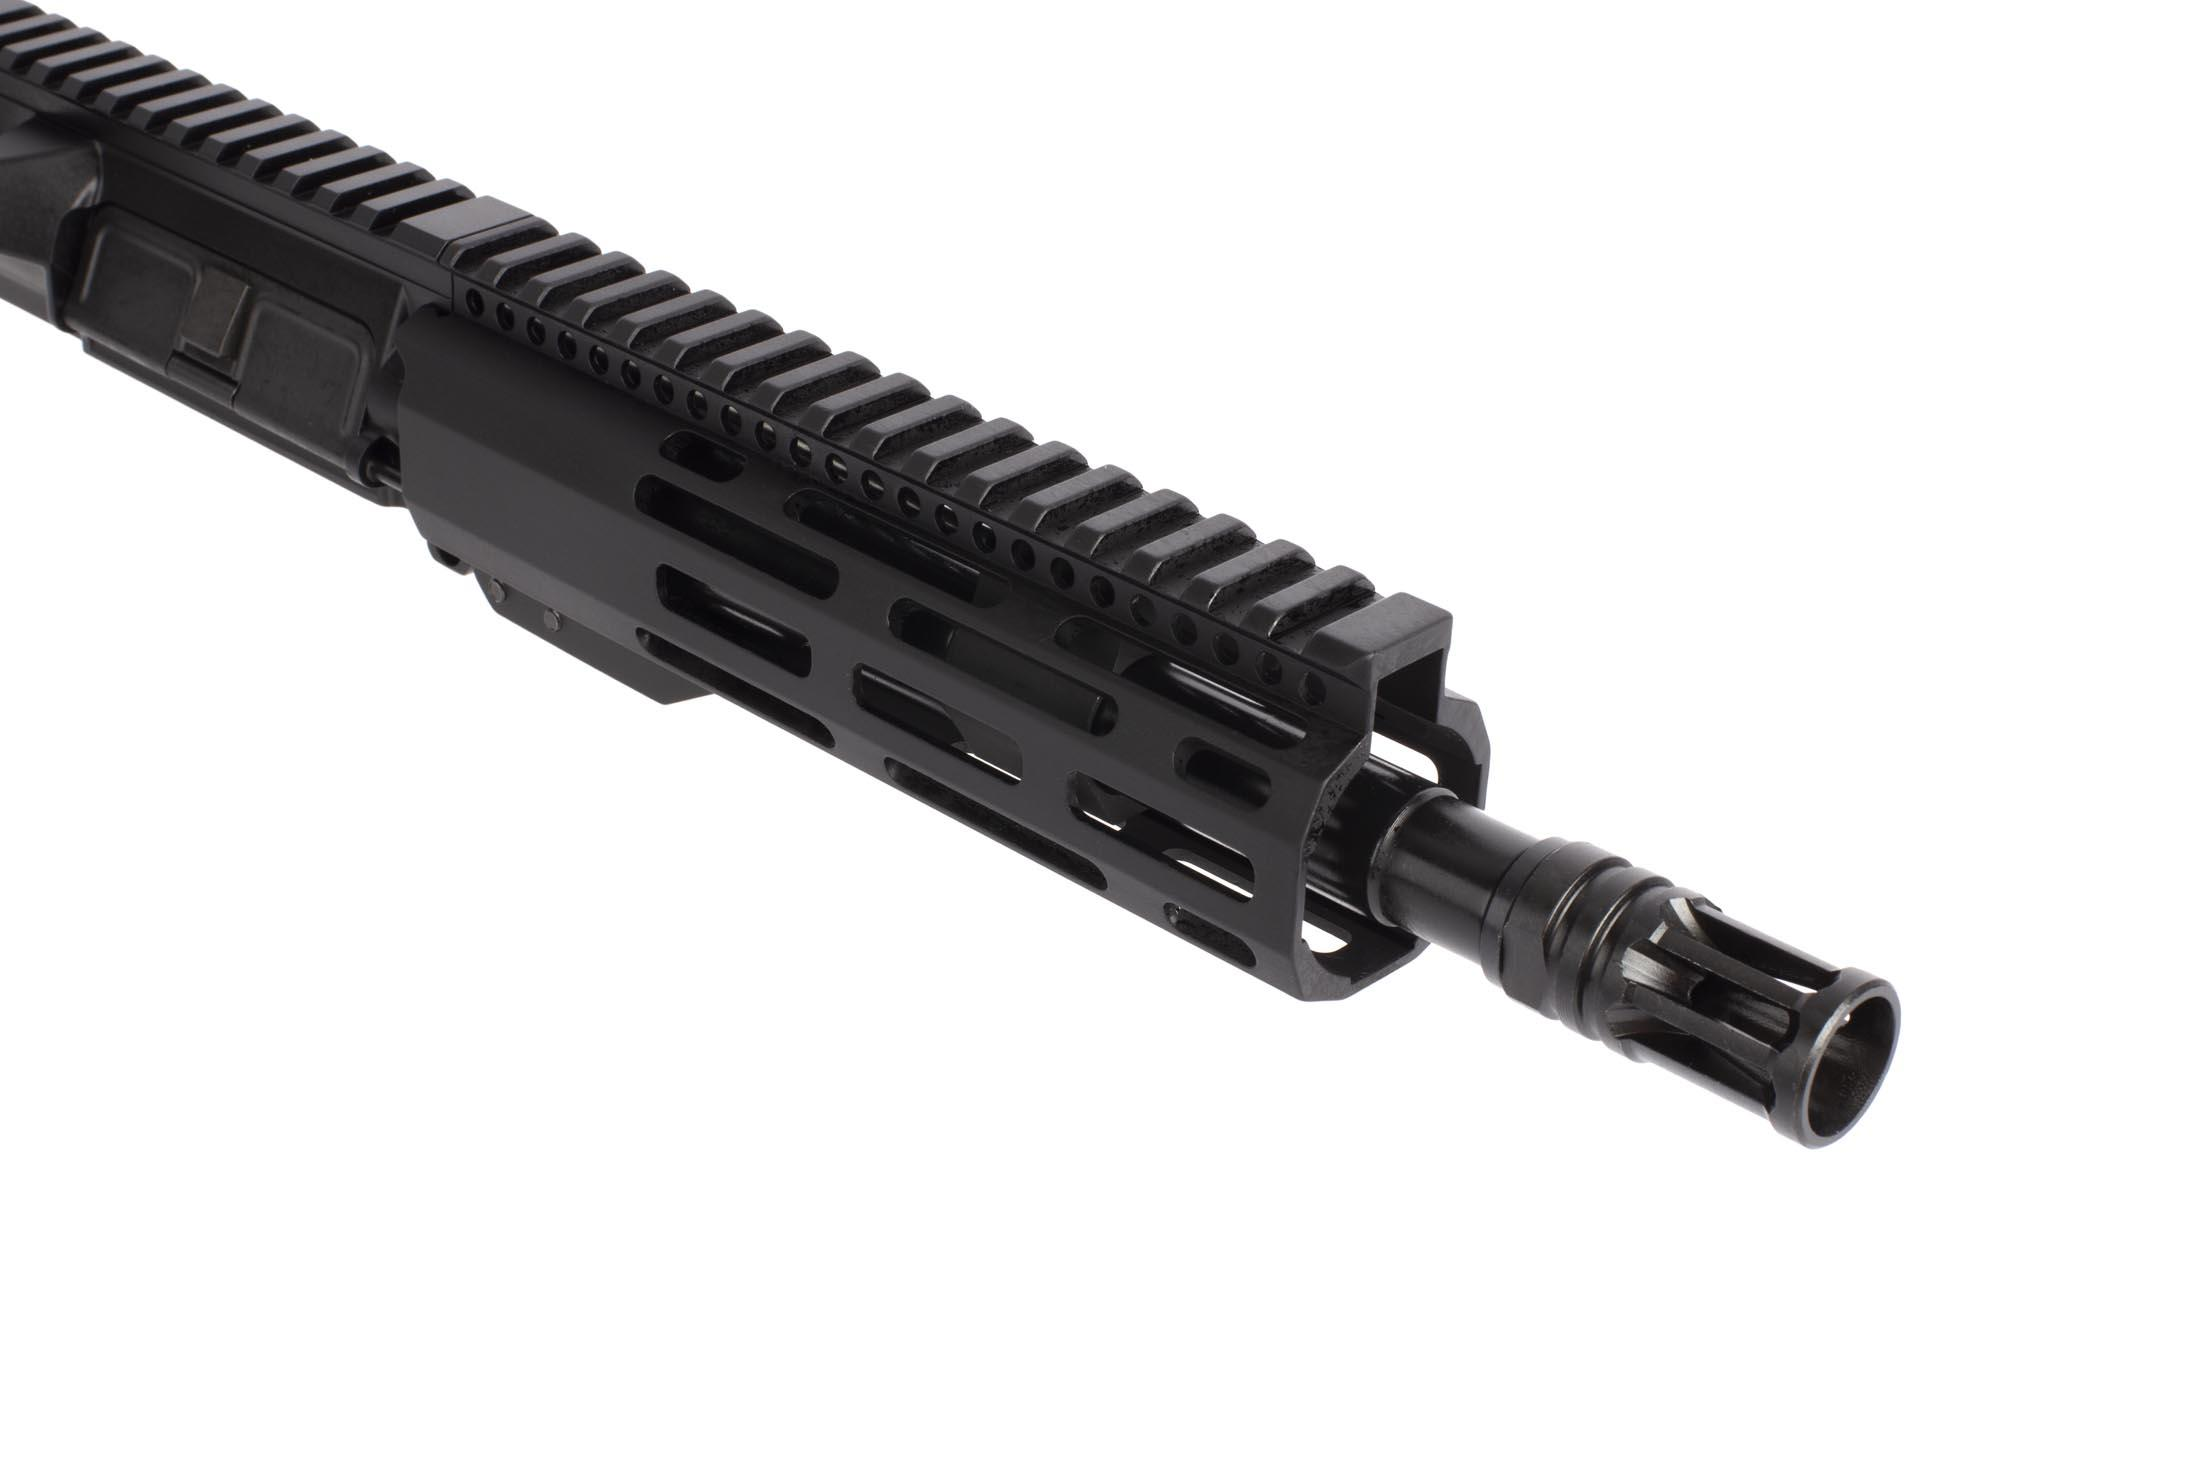 Radical Firearms barreled 8.5in 300 BLK free float upper receiver is threaded 5/8x24 with an effective A2 flash hider